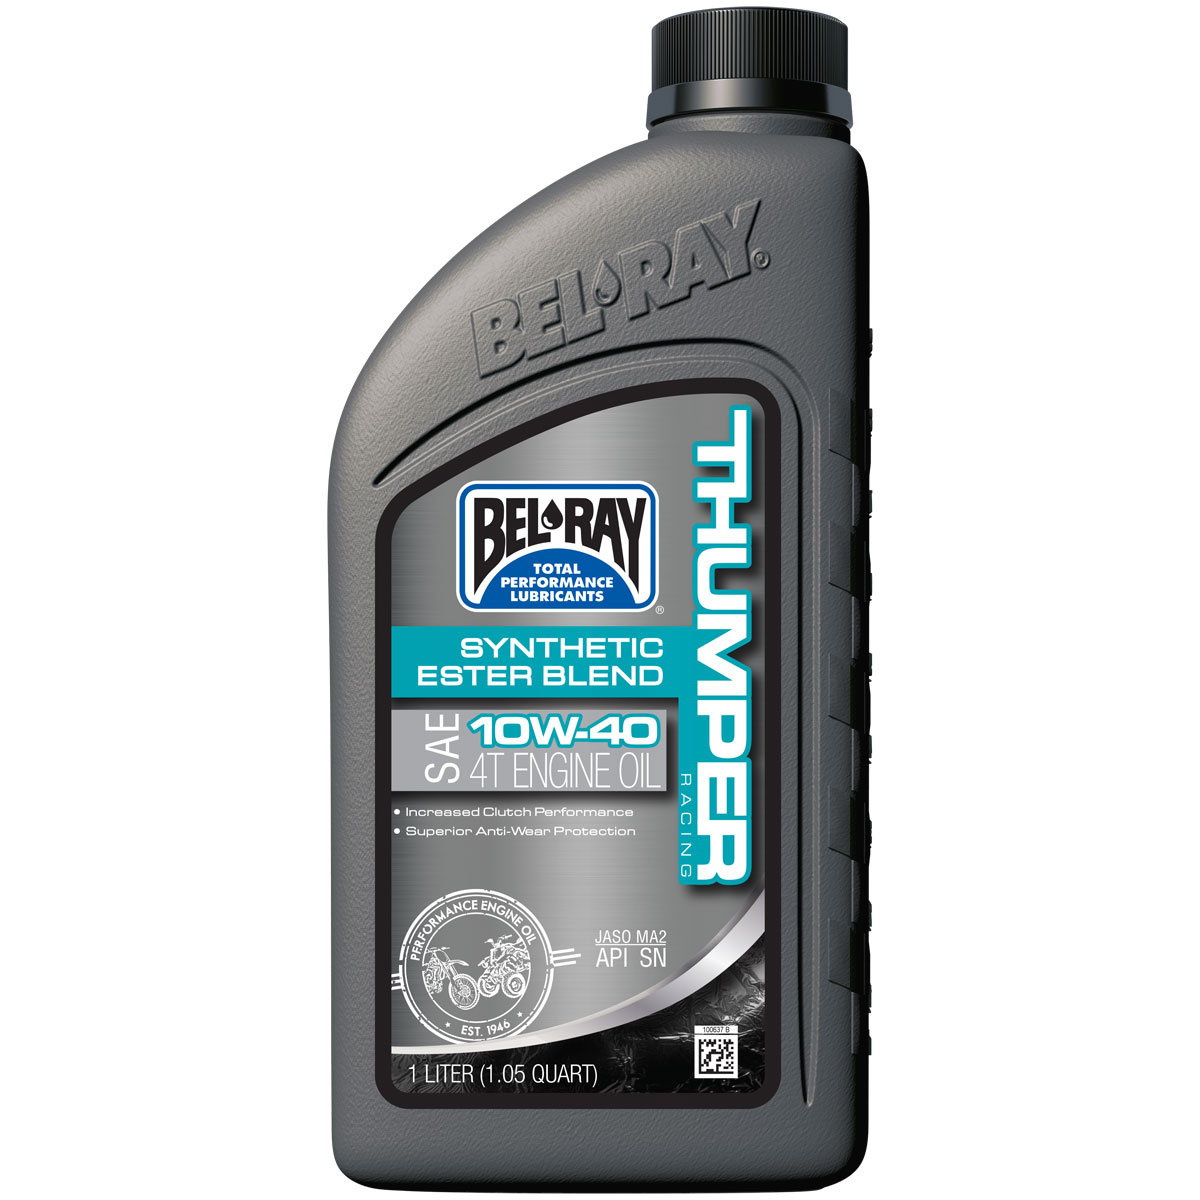 Bel-Ray Thumper Racing Synthetic Ester Blend 4T 10W40 Engine Oil 1 Liter